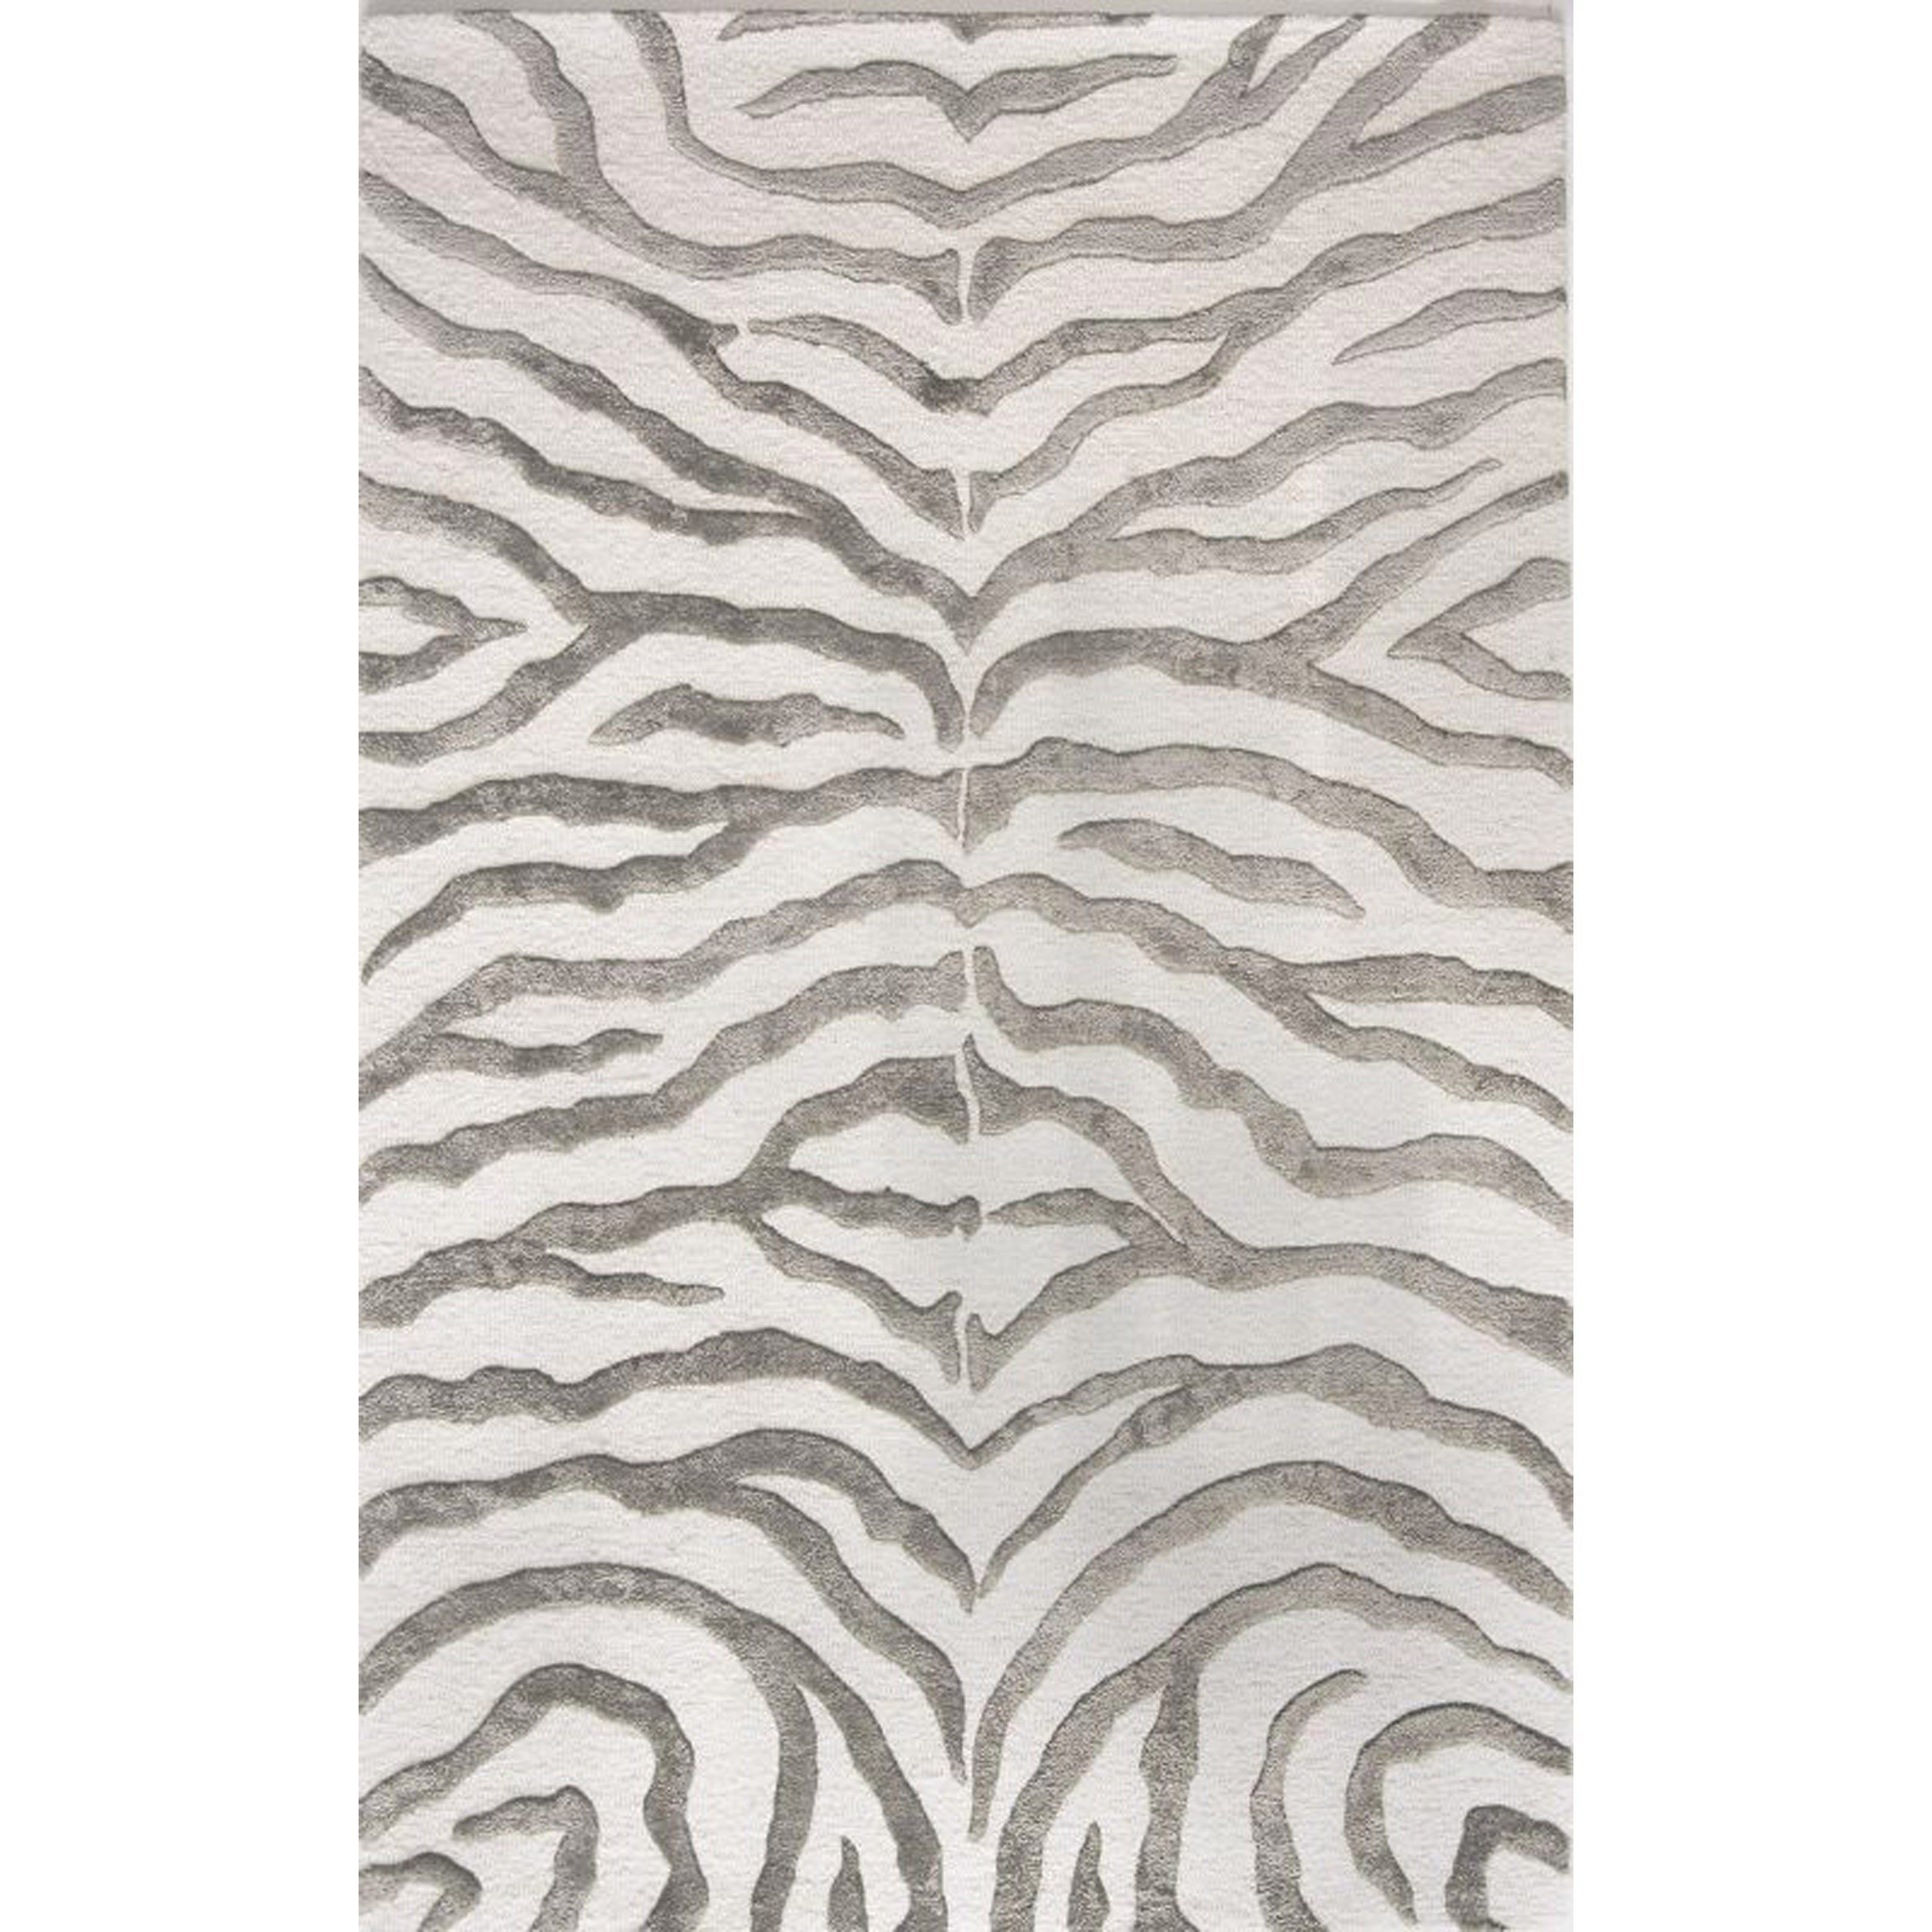 design by italian pile a luxurious rich and zebra p luxury warm black sitap modern white rug provides with striped stripe